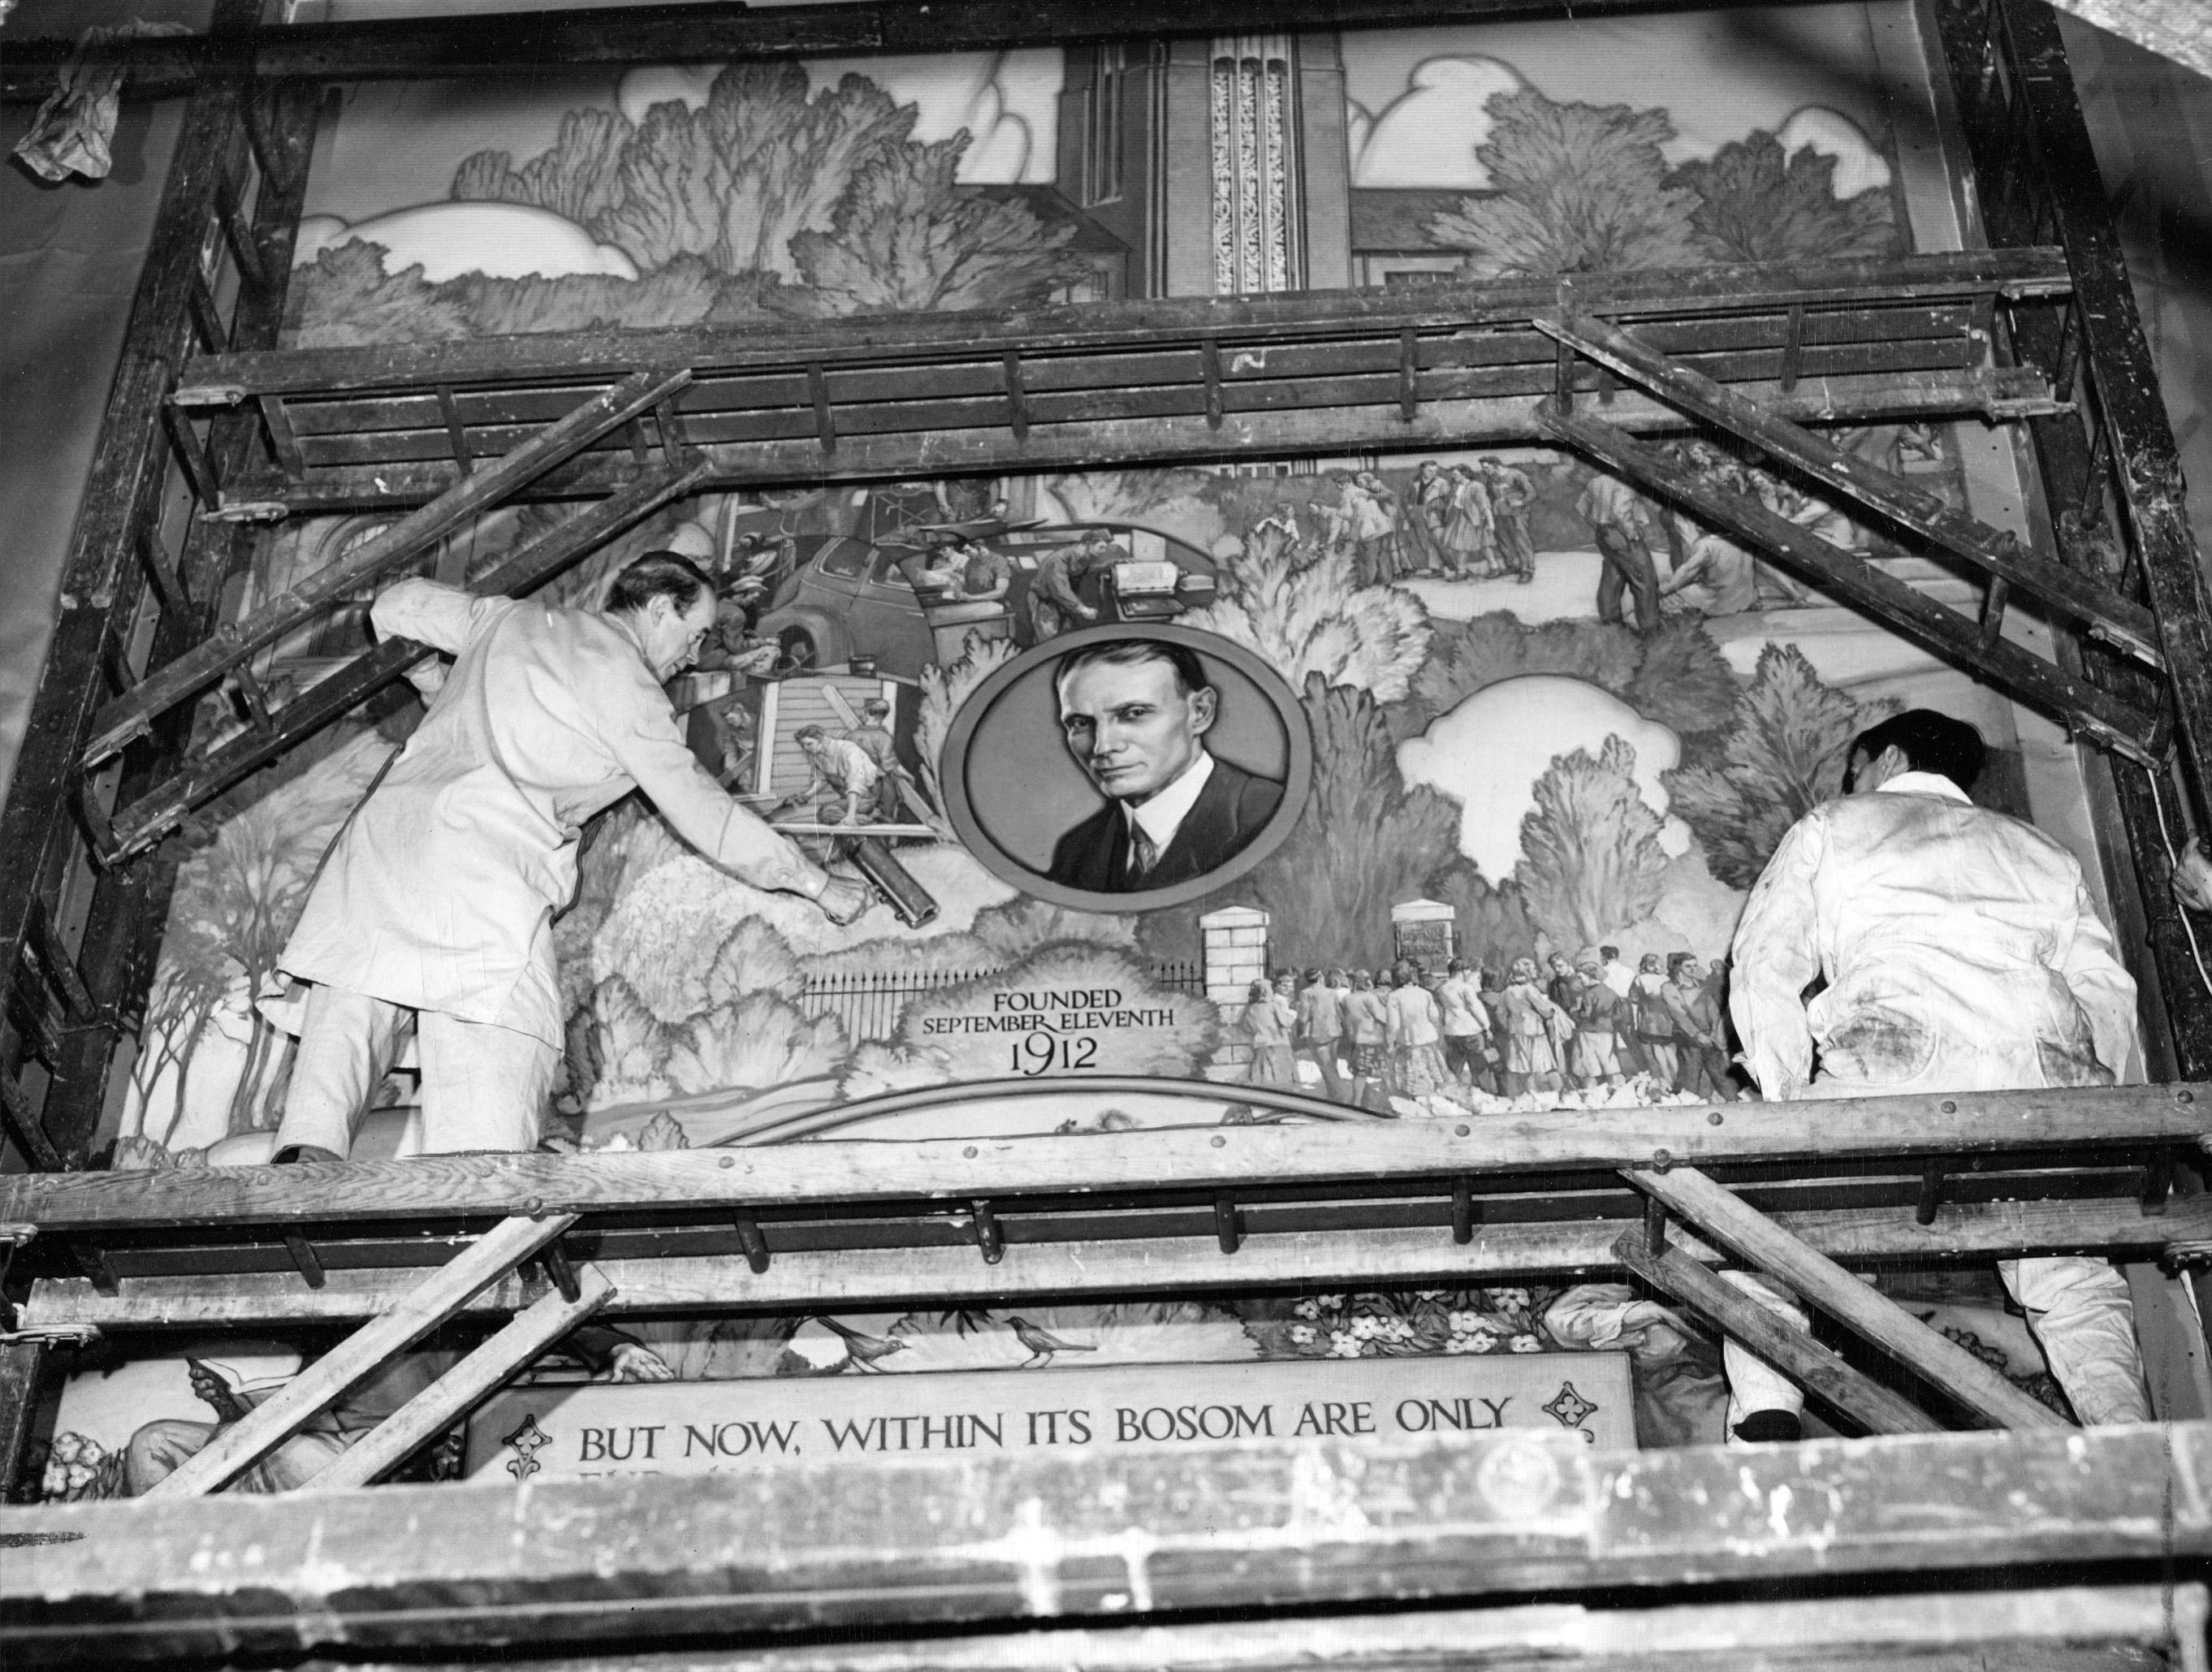 Murals for the Stuart Memorial Tower at Arsenal Technical High School are smoothed onto the walls by the artist, J. Scott Williams in 1948. The central portrait is of Milo Stuart, first principal of Tech, who served more than 20 years as head of the school.